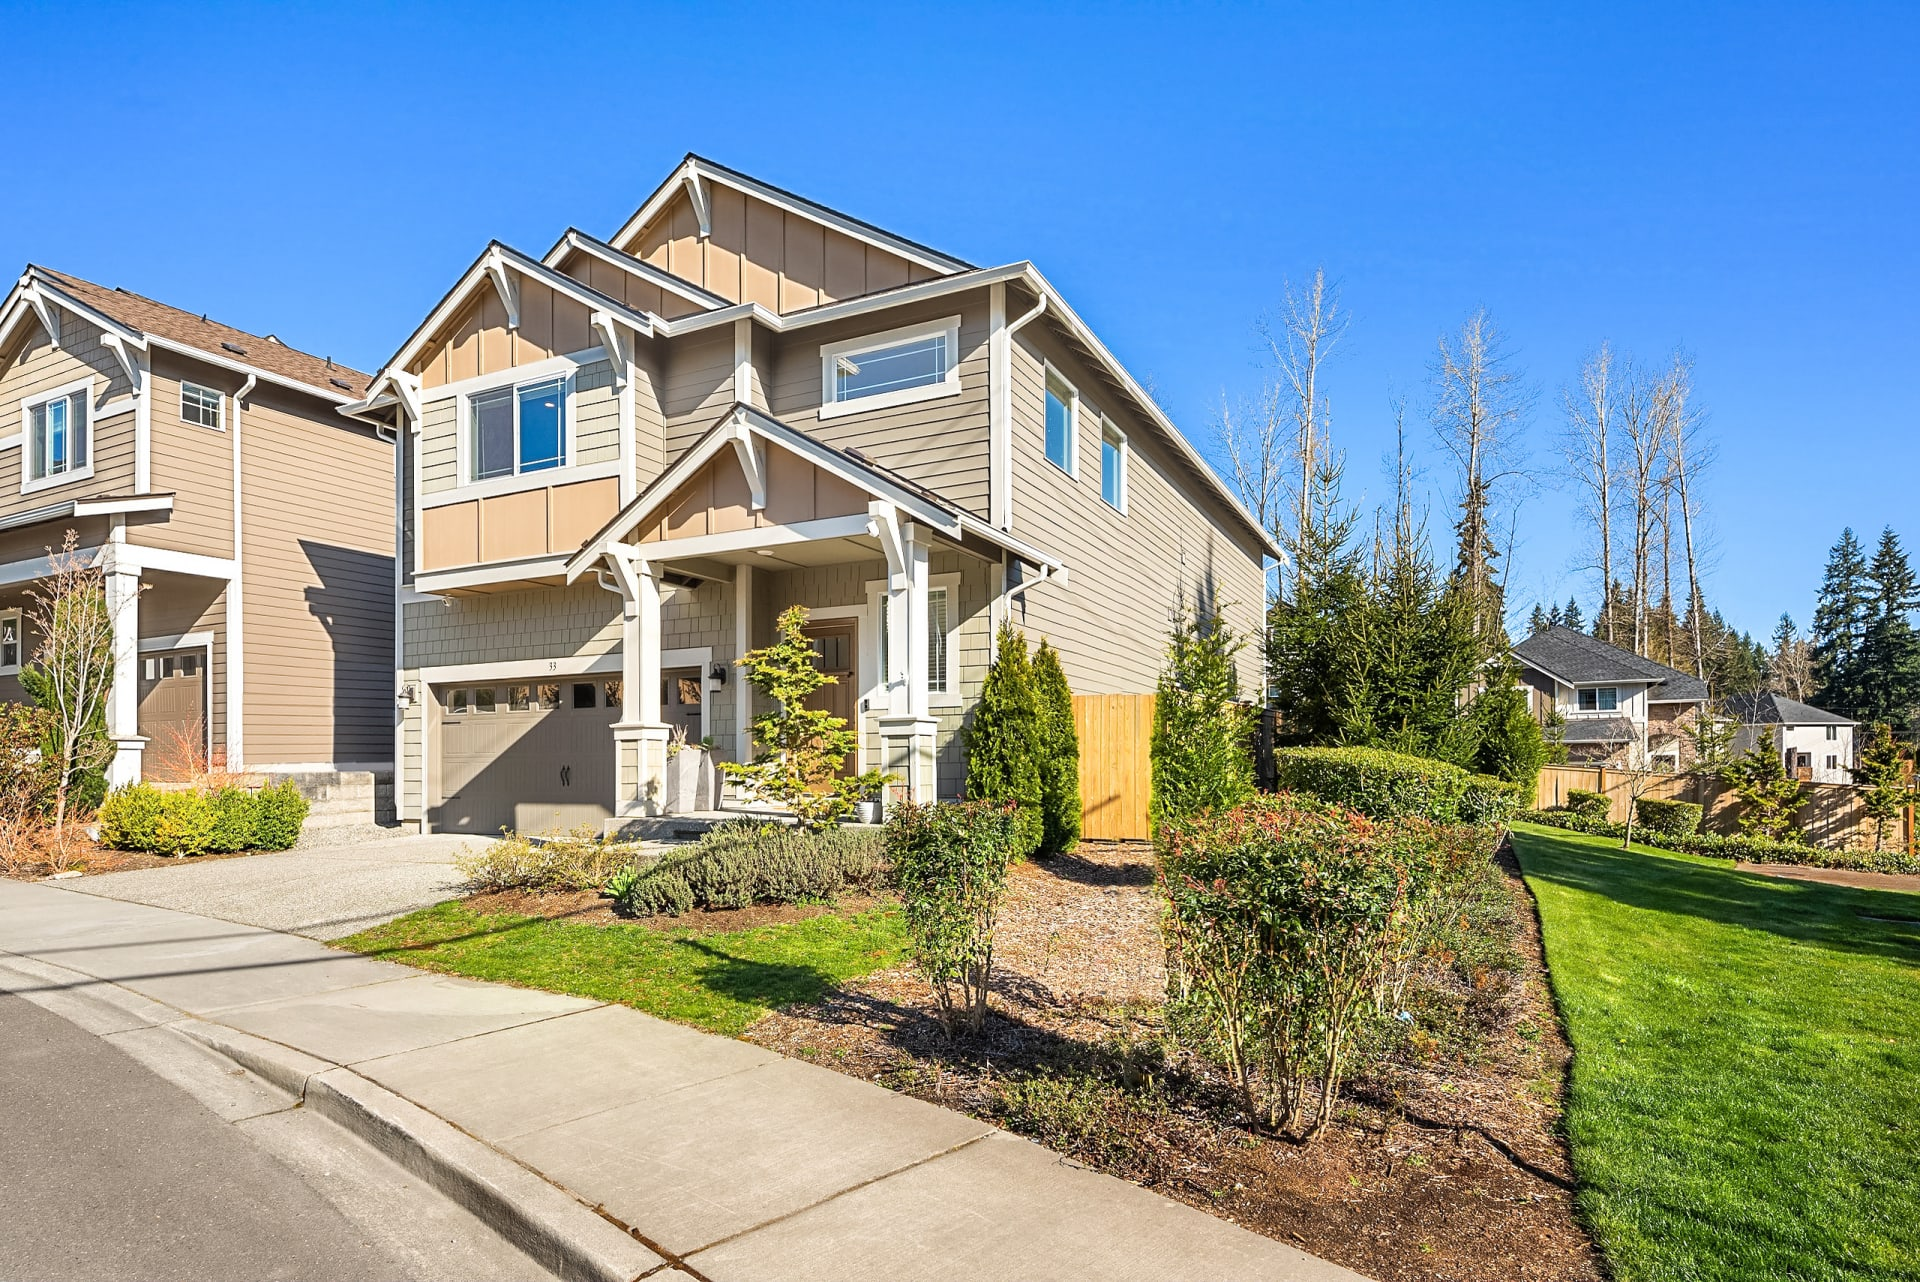 $935,000 / 33 159th St SE Bothell, 98012 image